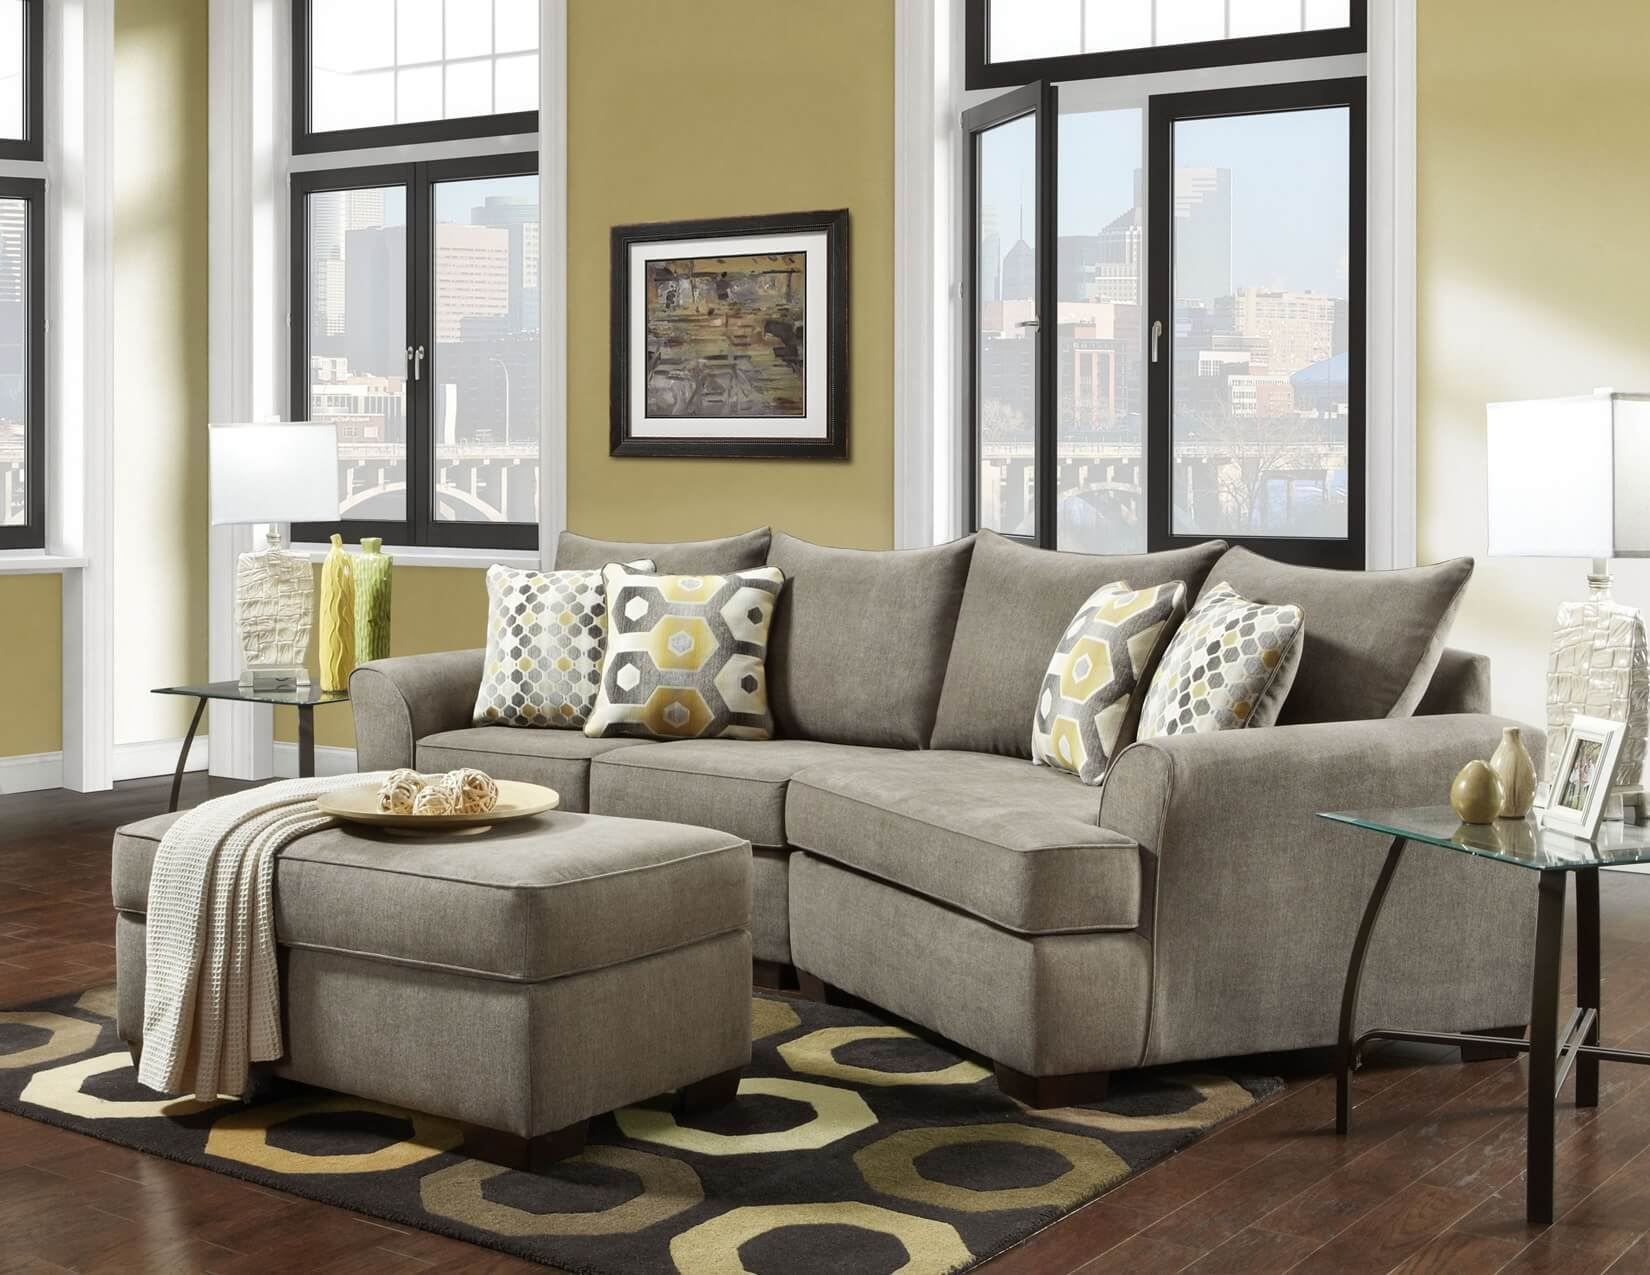 Essence Platinum 2 Pc Cuddler Sectional Sofa Sets ~ Sectional Sofa With Cuddler